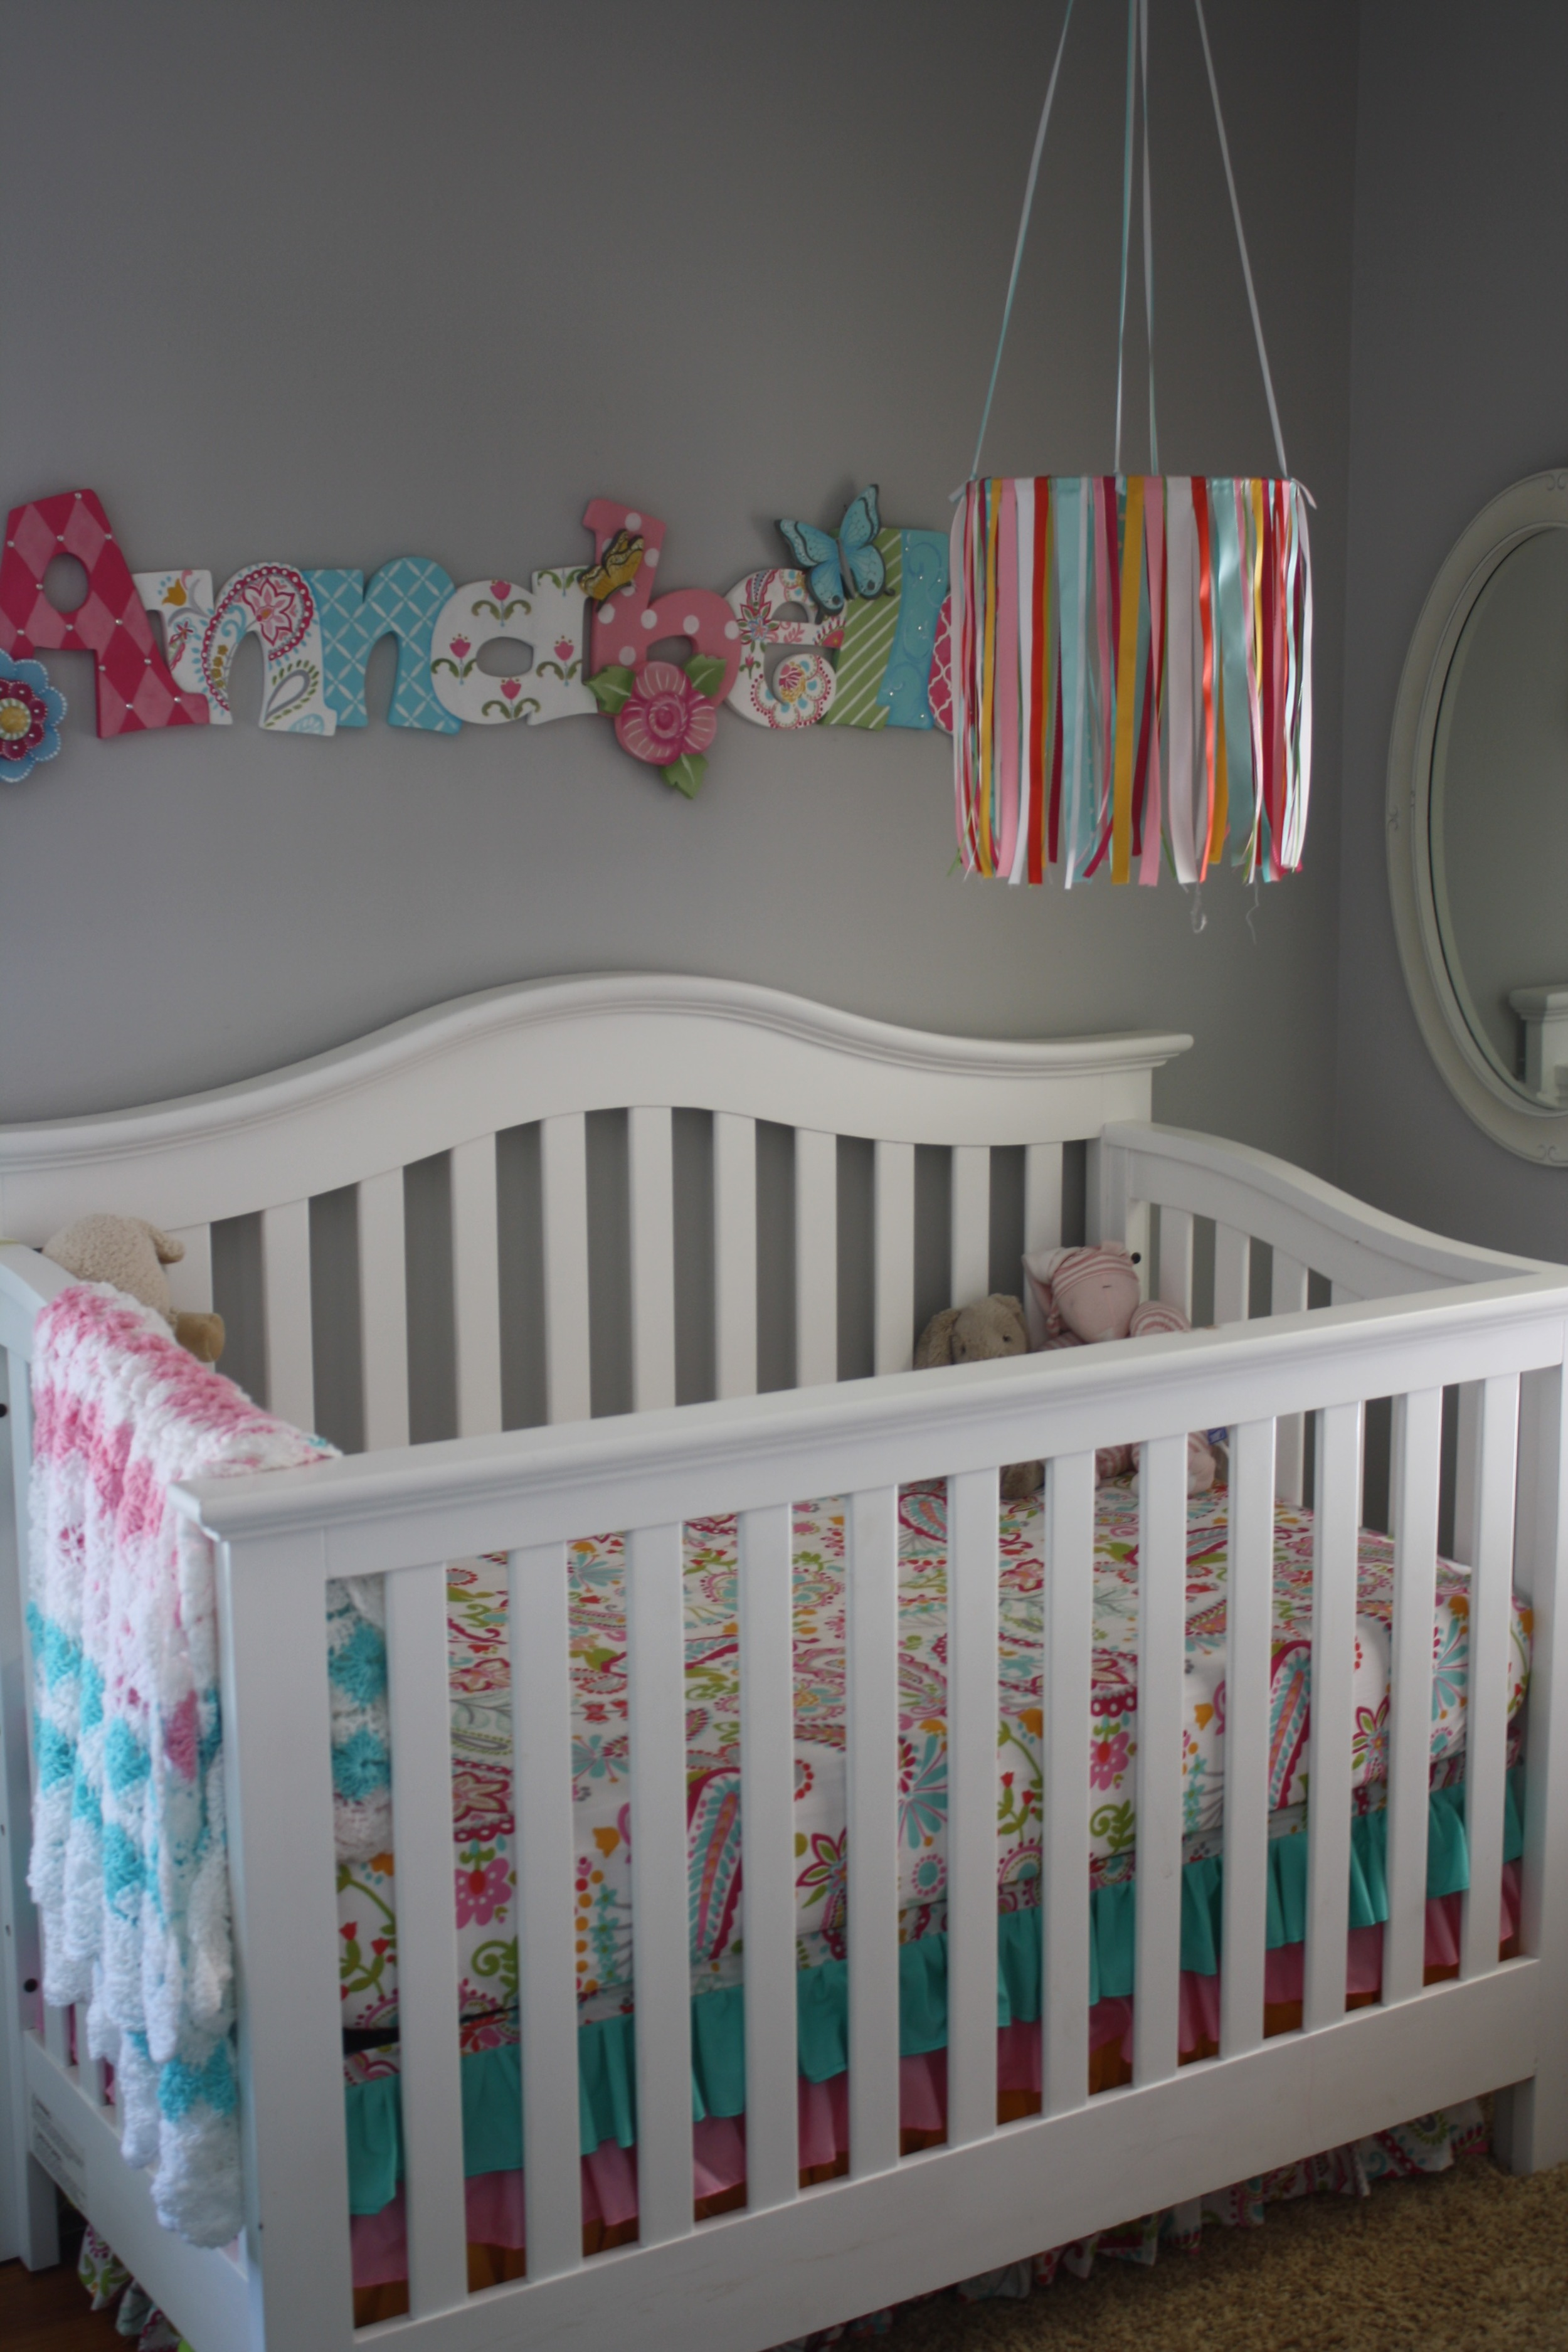 The crib sheet was their inspiration!